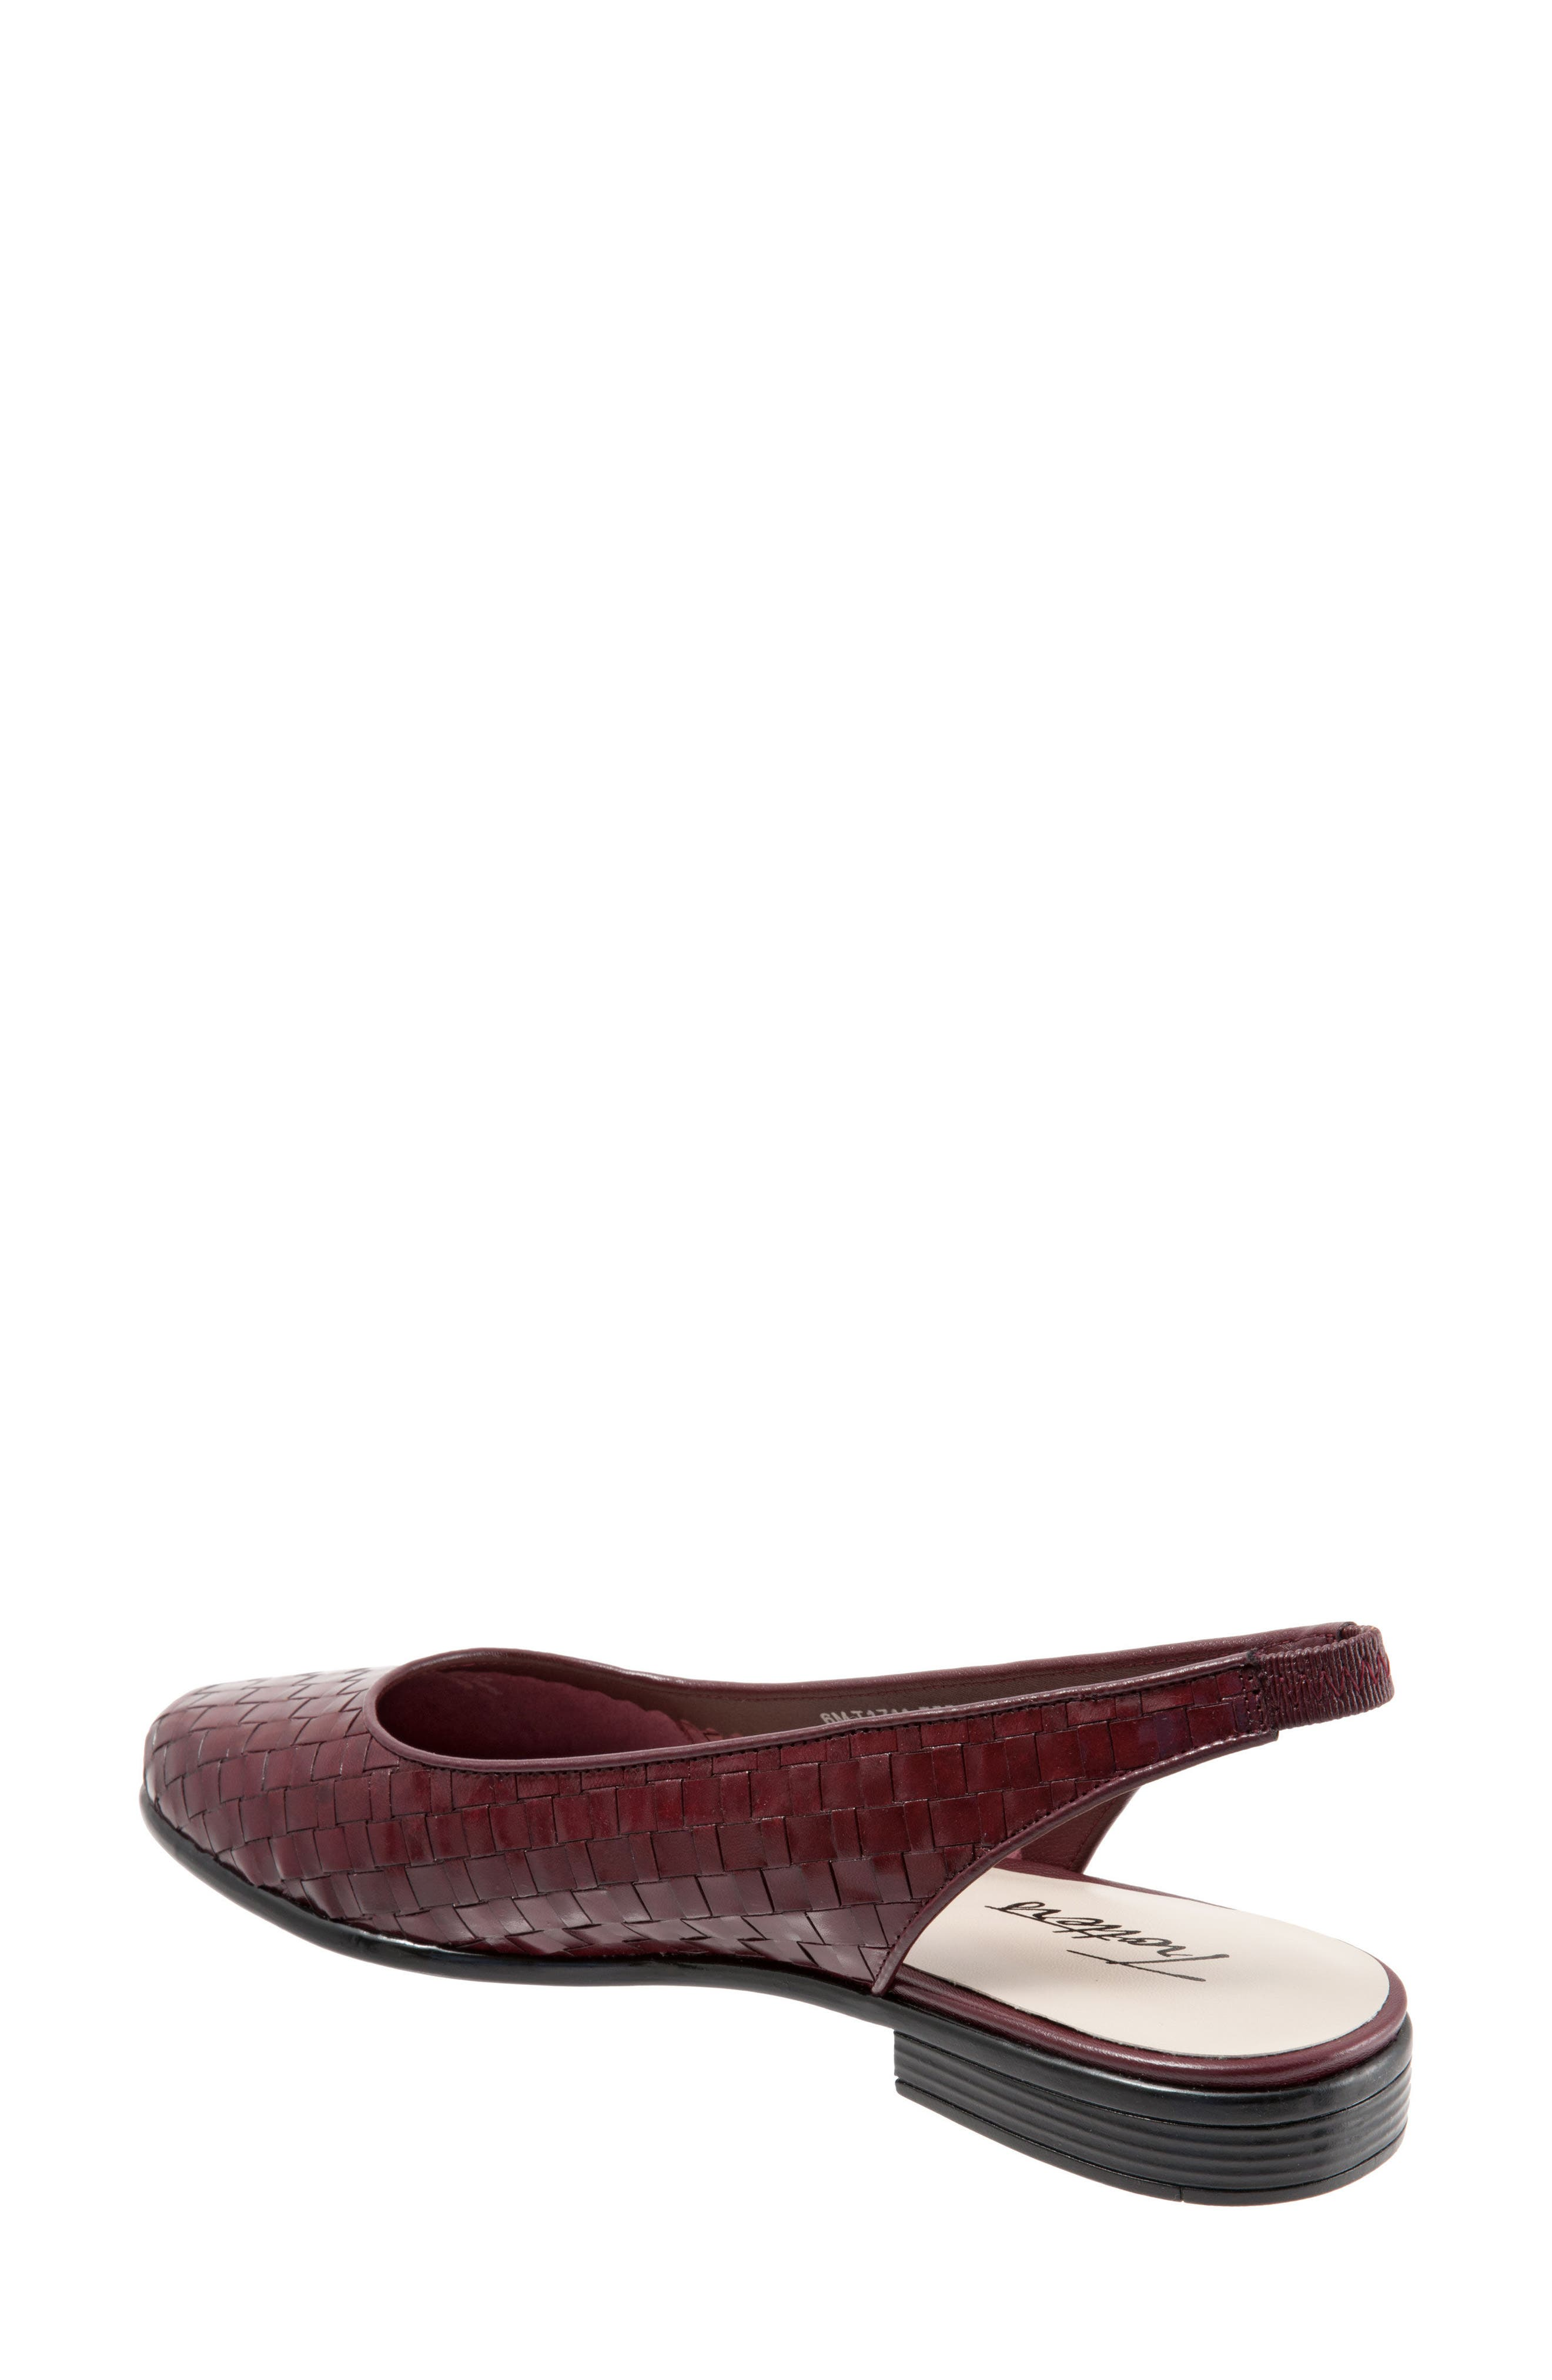 Alternate Image 2  - Trotters Lucy Slingback Flat (Women)